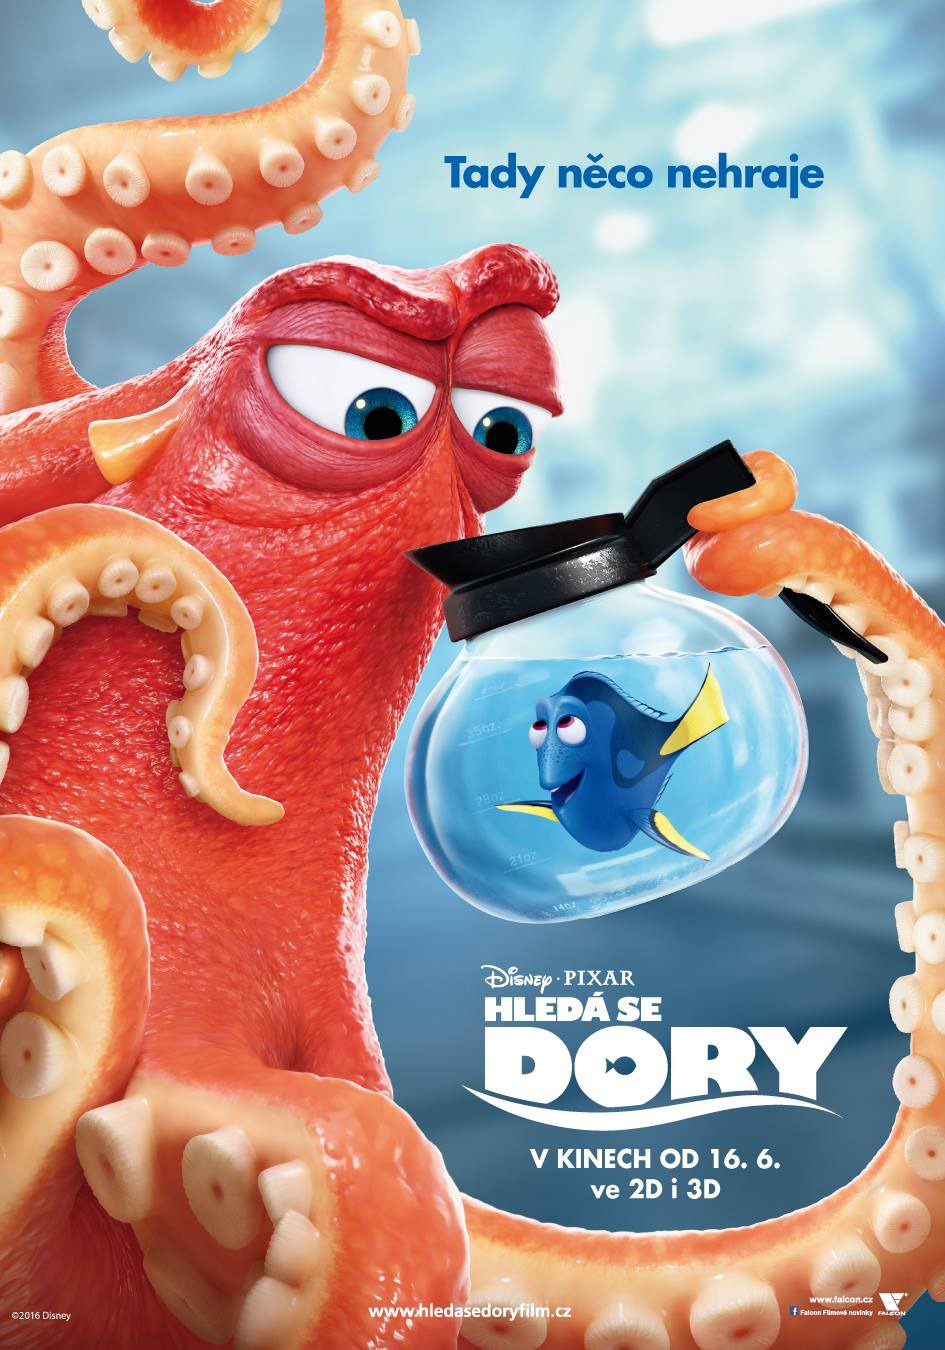 finding-dory-international-poster-03_pixar-post